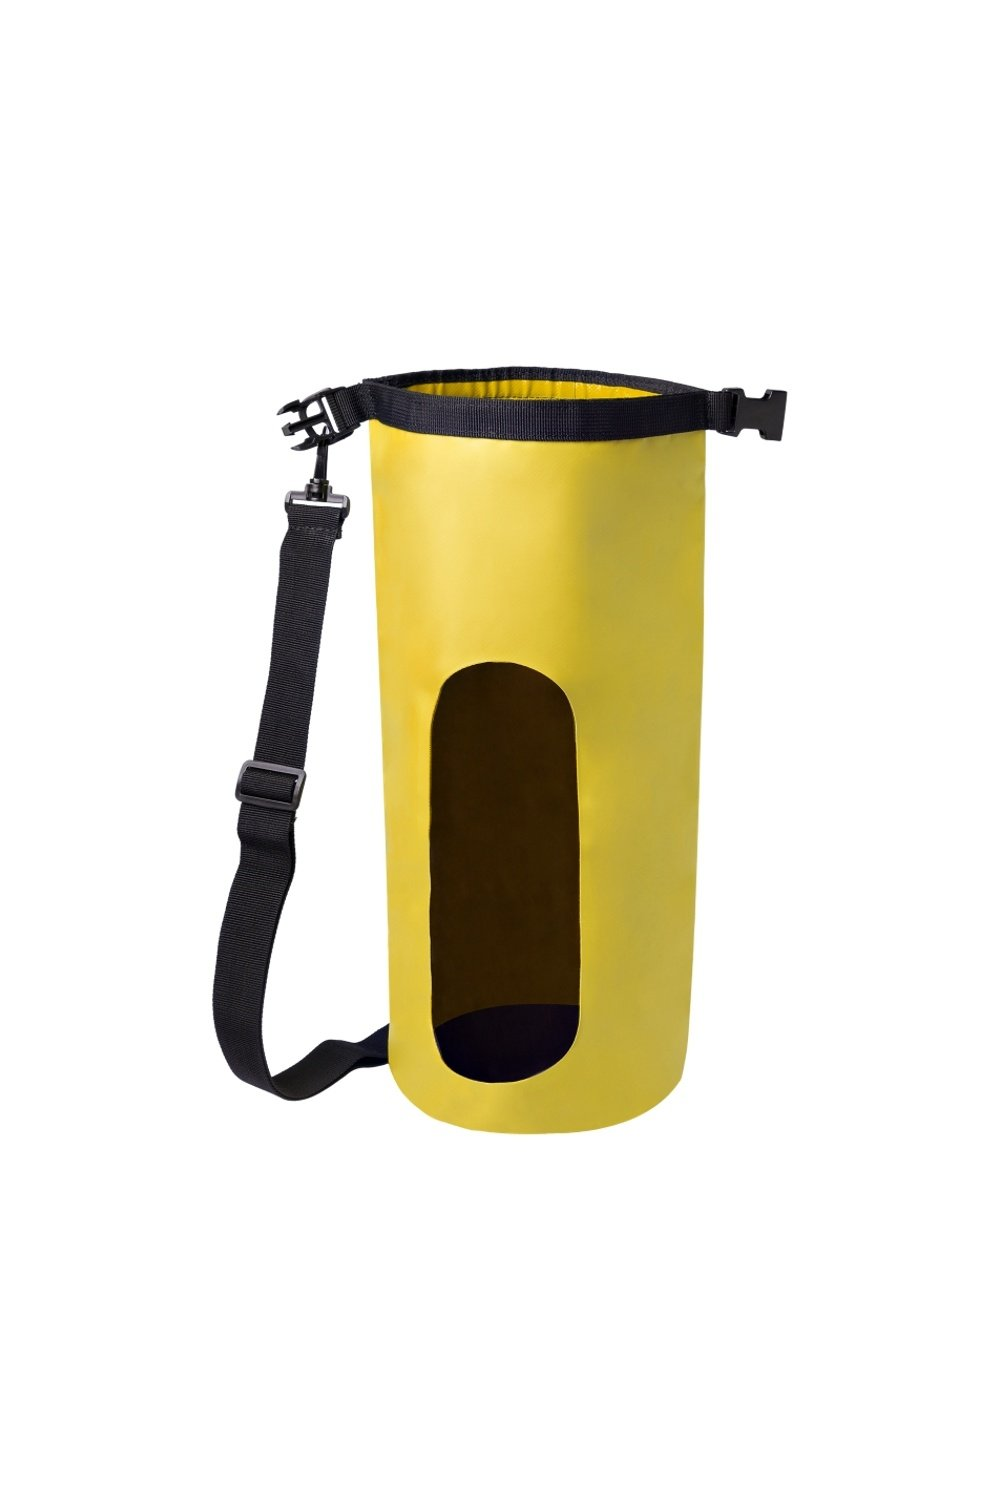 nod Waterproof 5 Liter Yellow Dry Bag With Adjustable Strap and Snap Buckle and Heavy Duty Vinyl